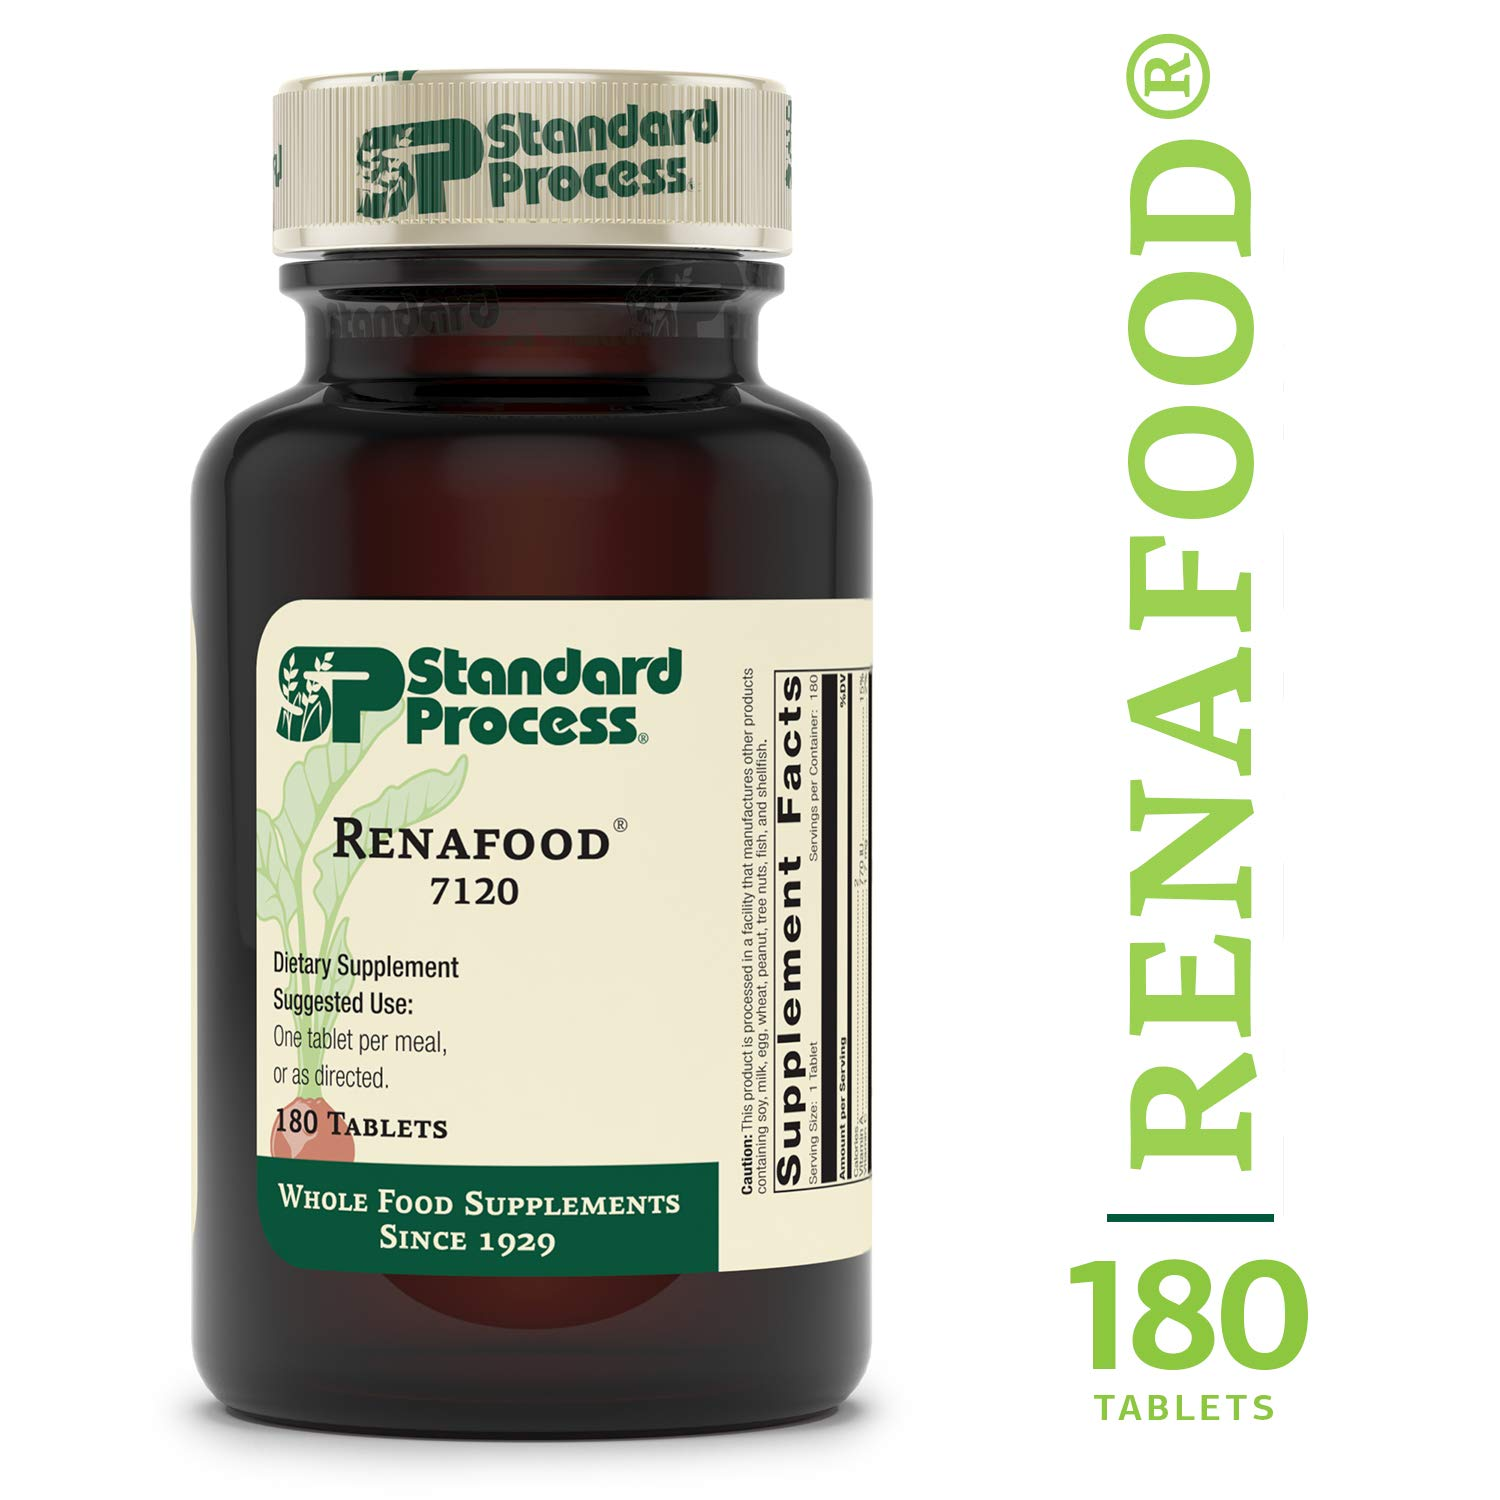 Standard Process – Renafood – Whole Food Kidney Support Supplement for Healthy Renal Function, Vitamin A, Vitamin C – 180 Tablets